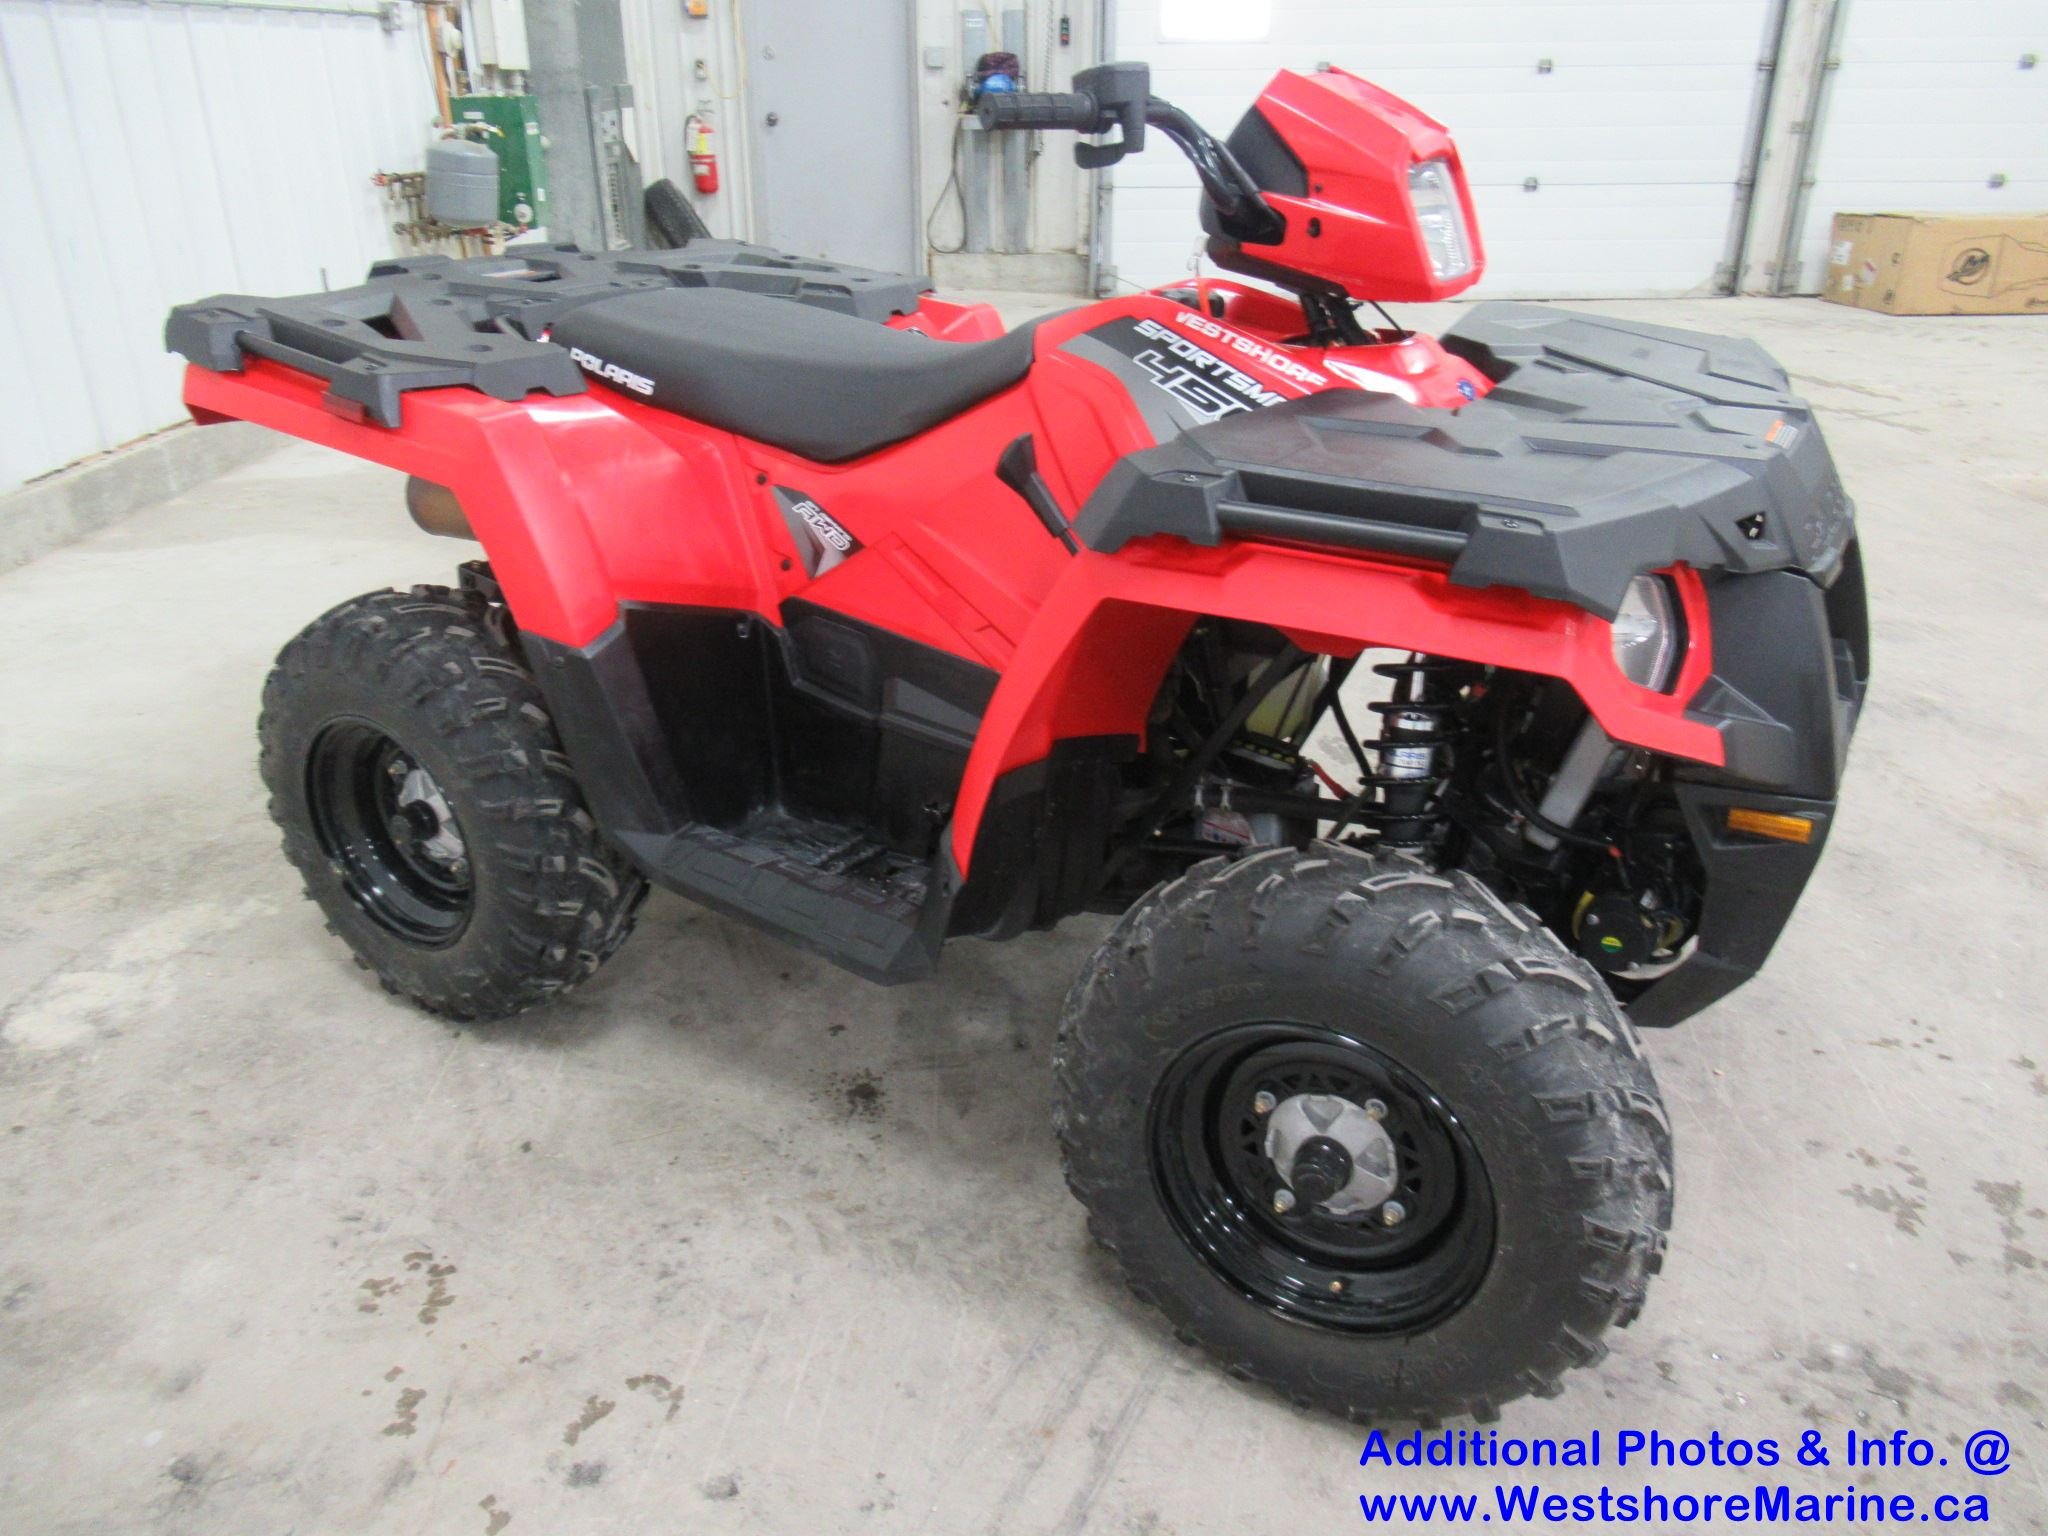 New 2019 Polaris 450 SPORTSMAN H.O - Free 3 Year Warranty!